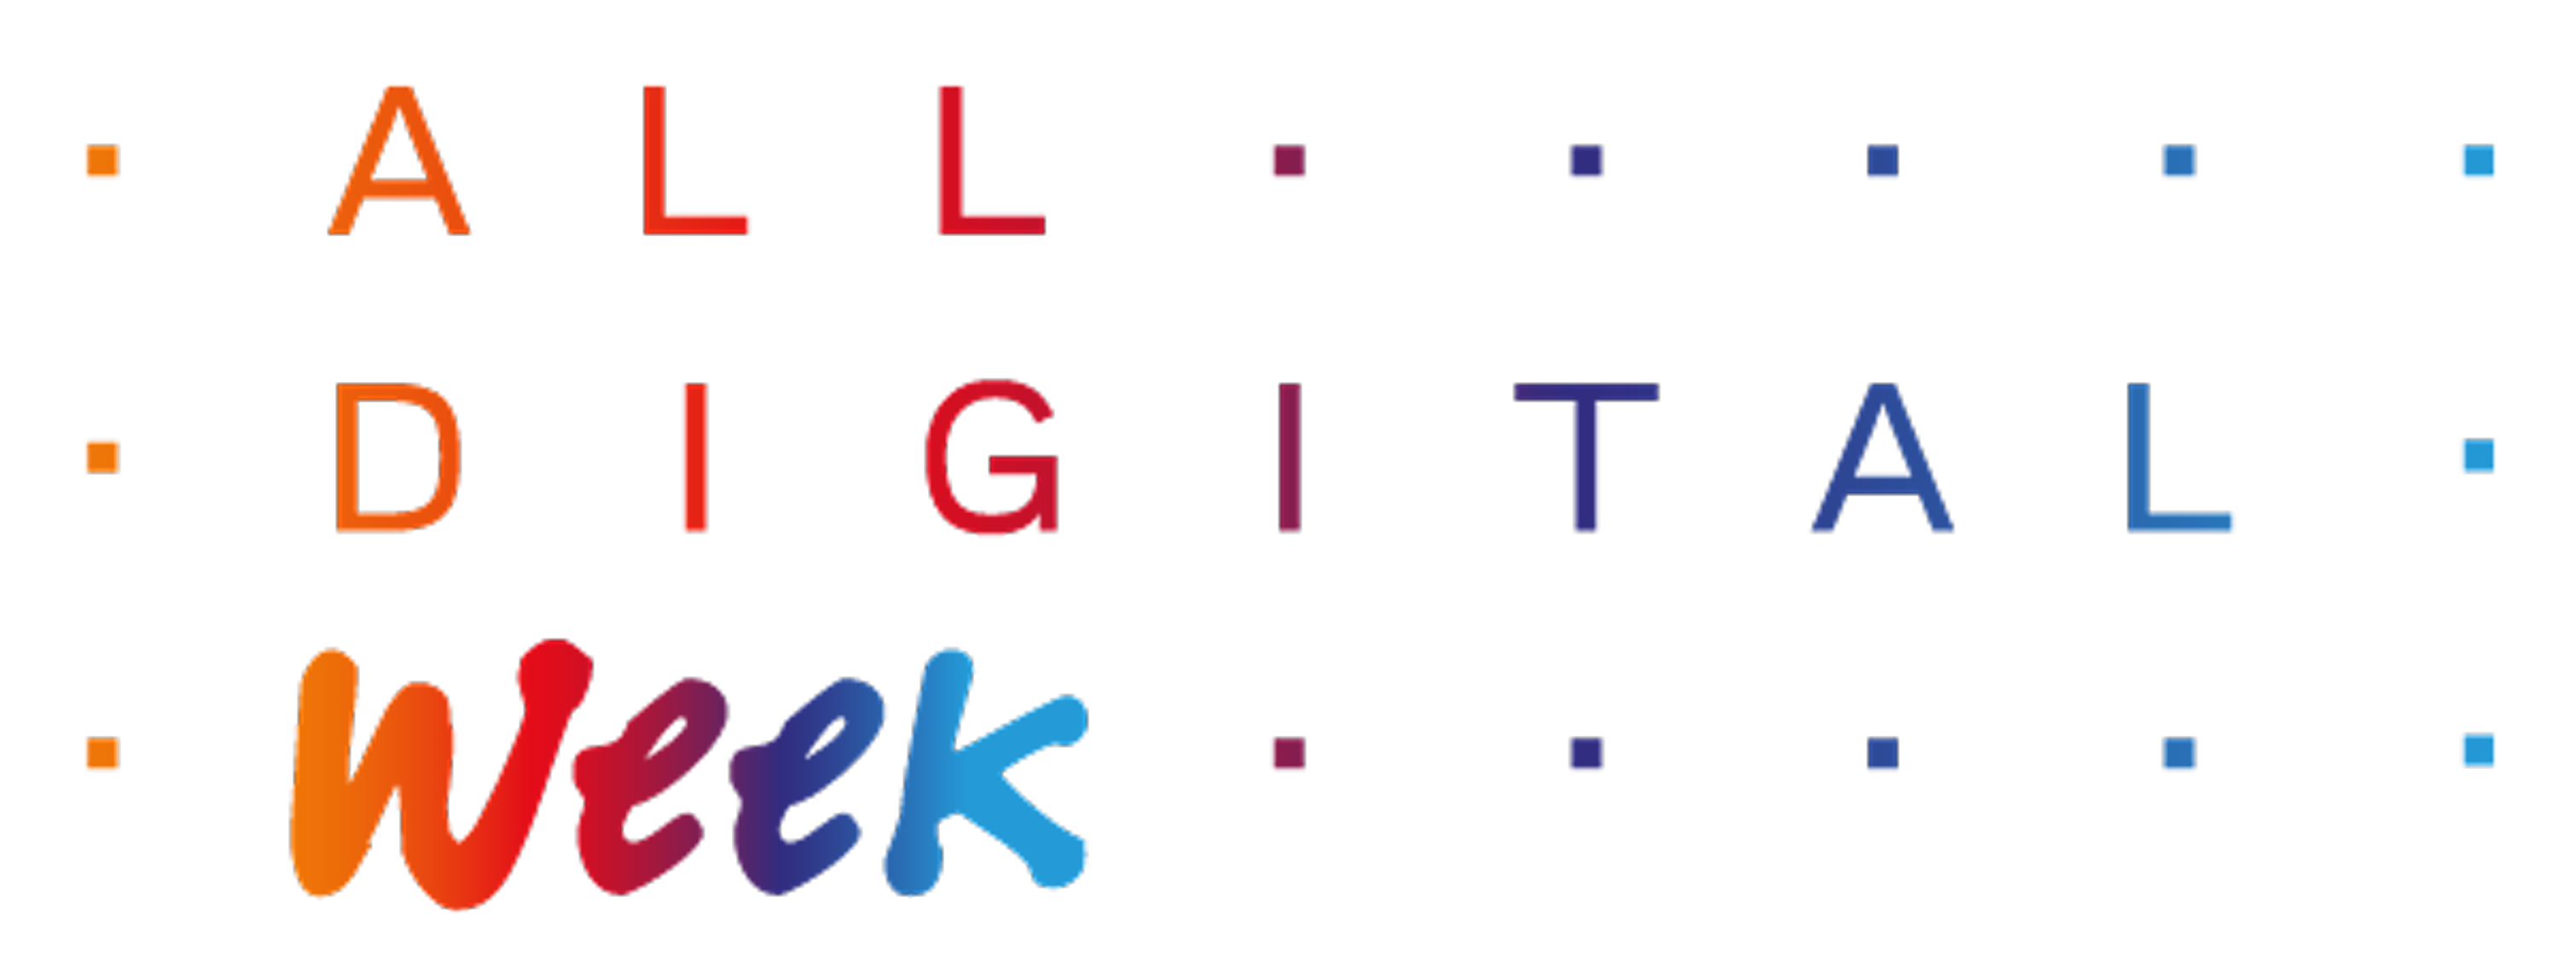 All Digital Week 2021 logotyp